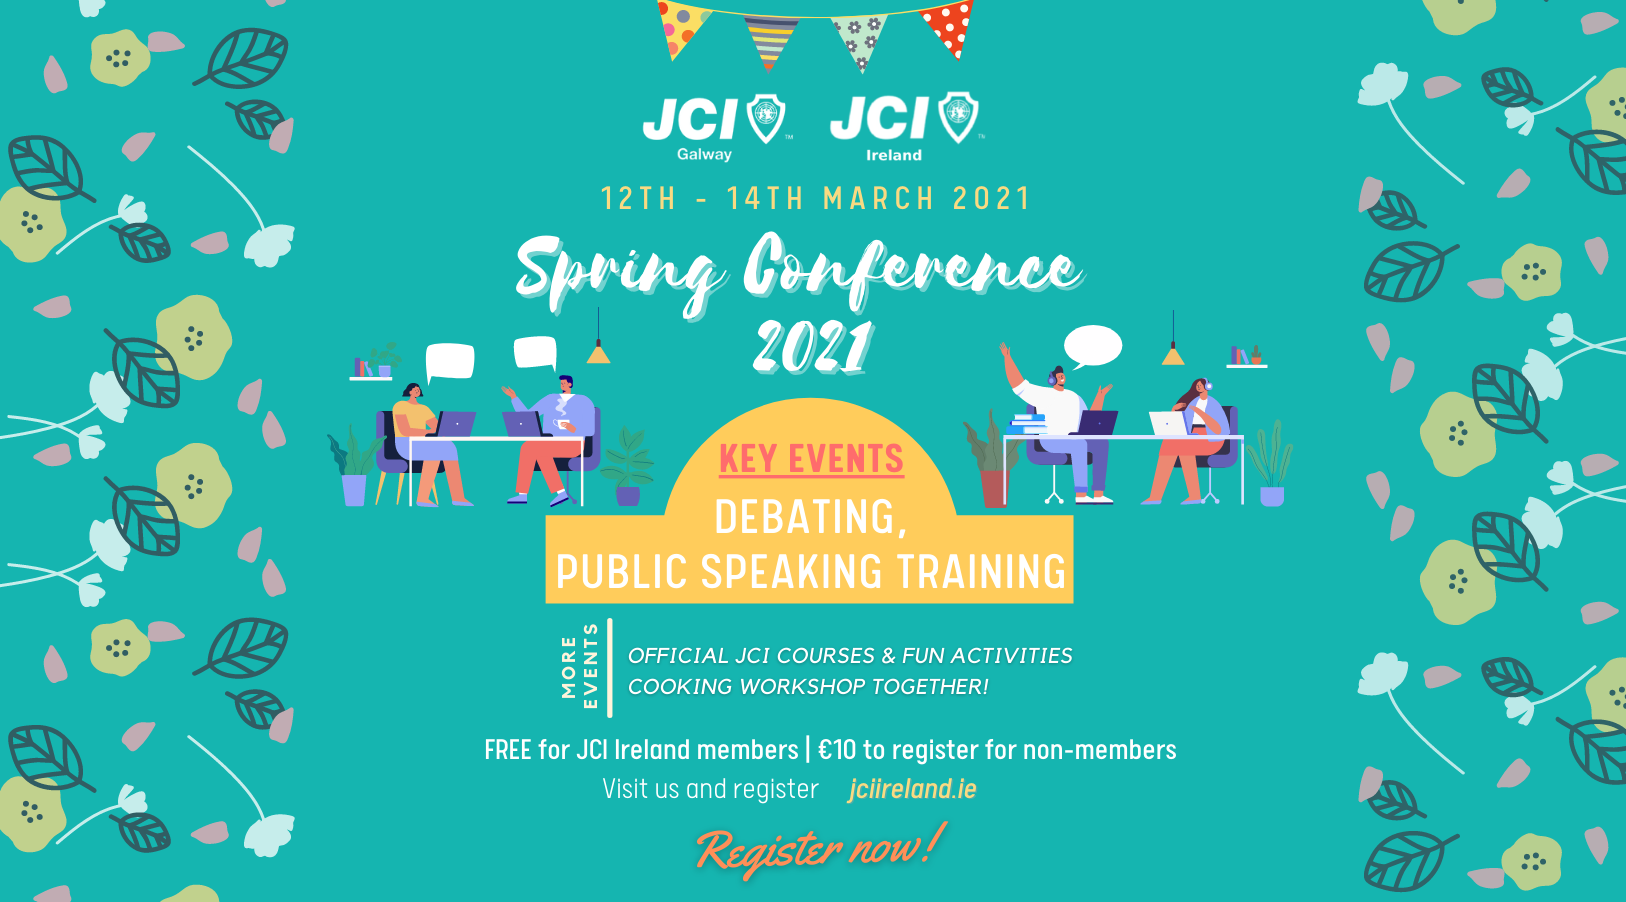 JCI Ireland Spring Conference 2021